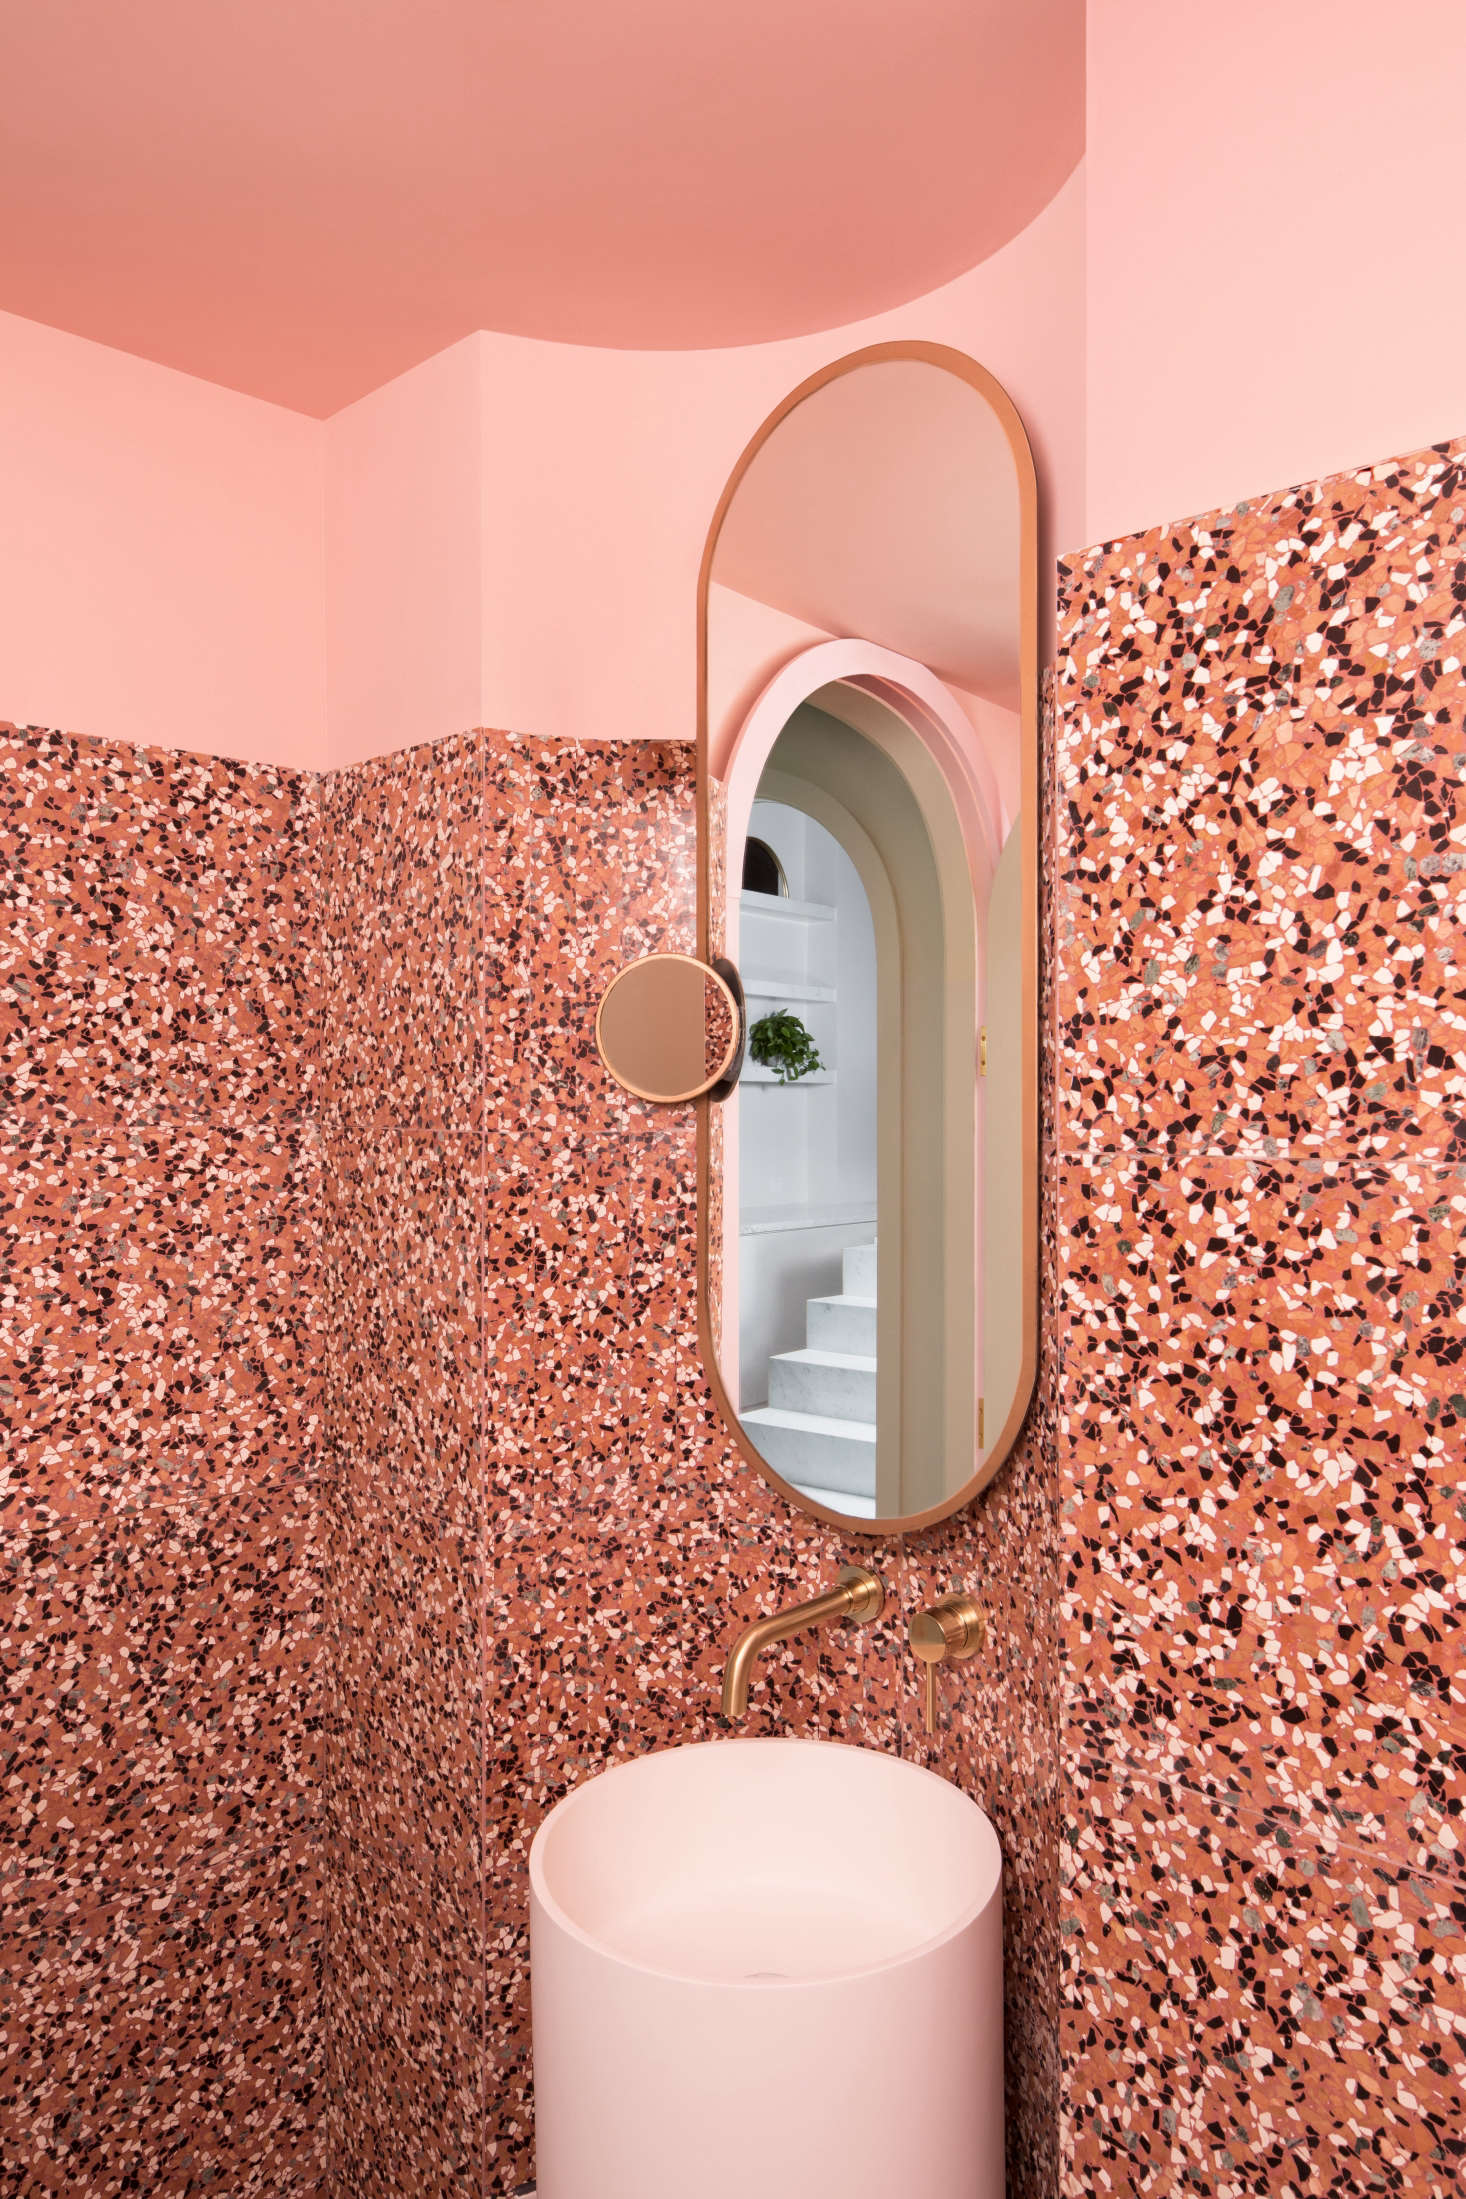 Cinematic pink: The bathroom at a Chengdu, China, cafe inspired by Wes Anderson&#8